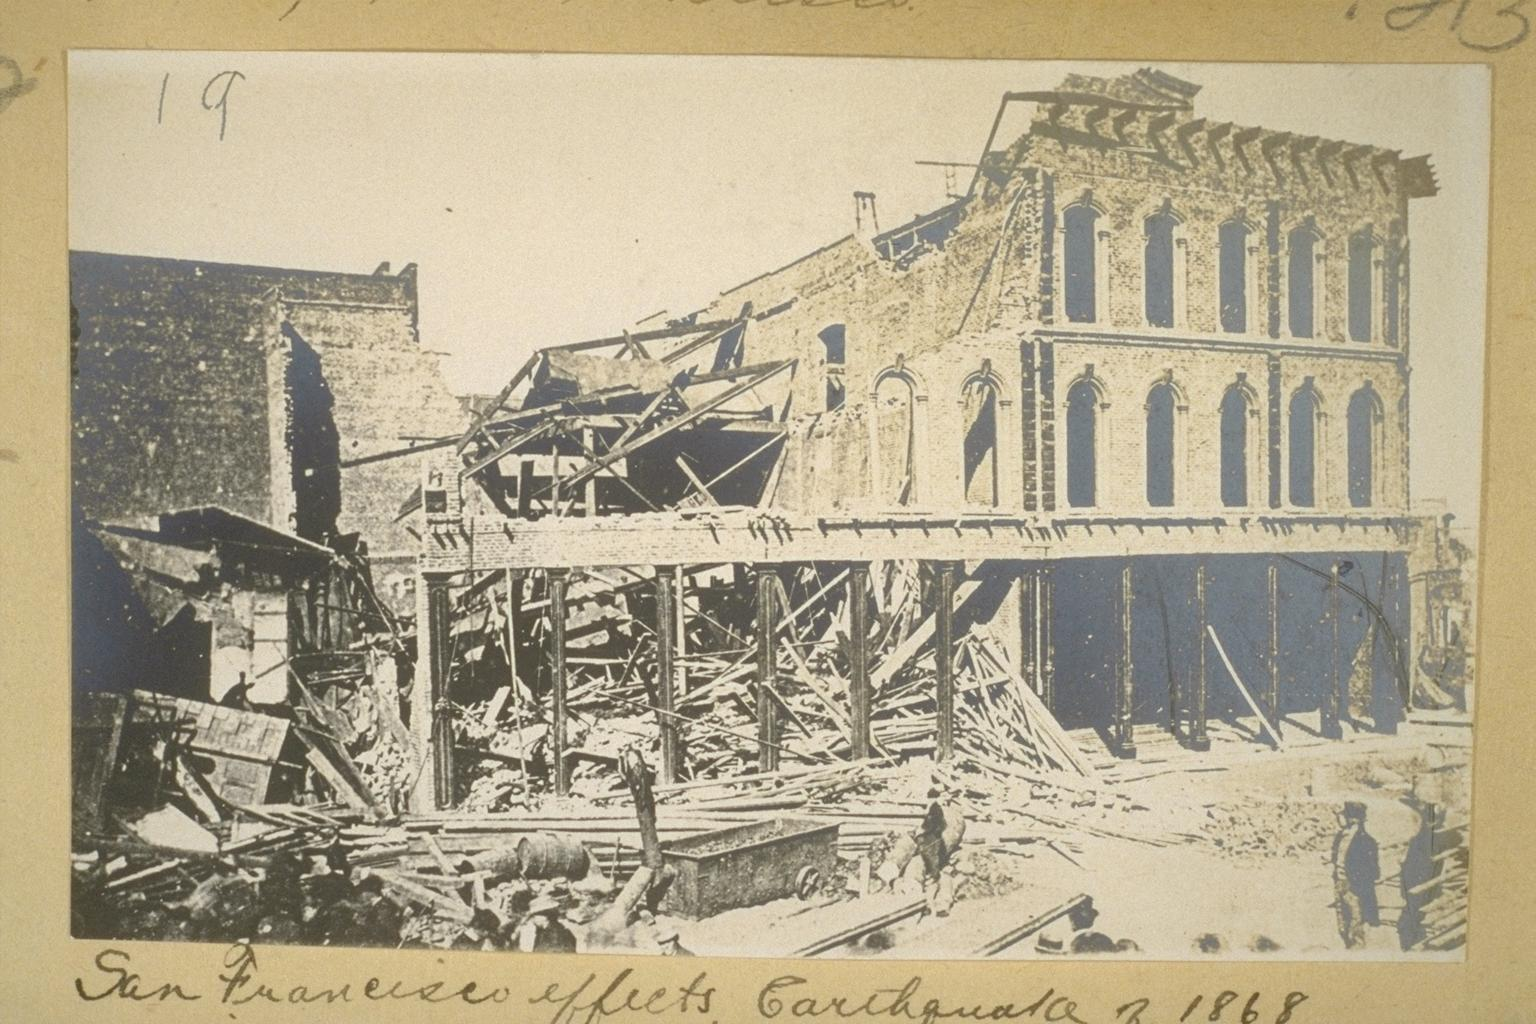 San Francisco effects Earthquake of <b>1868</b> 213